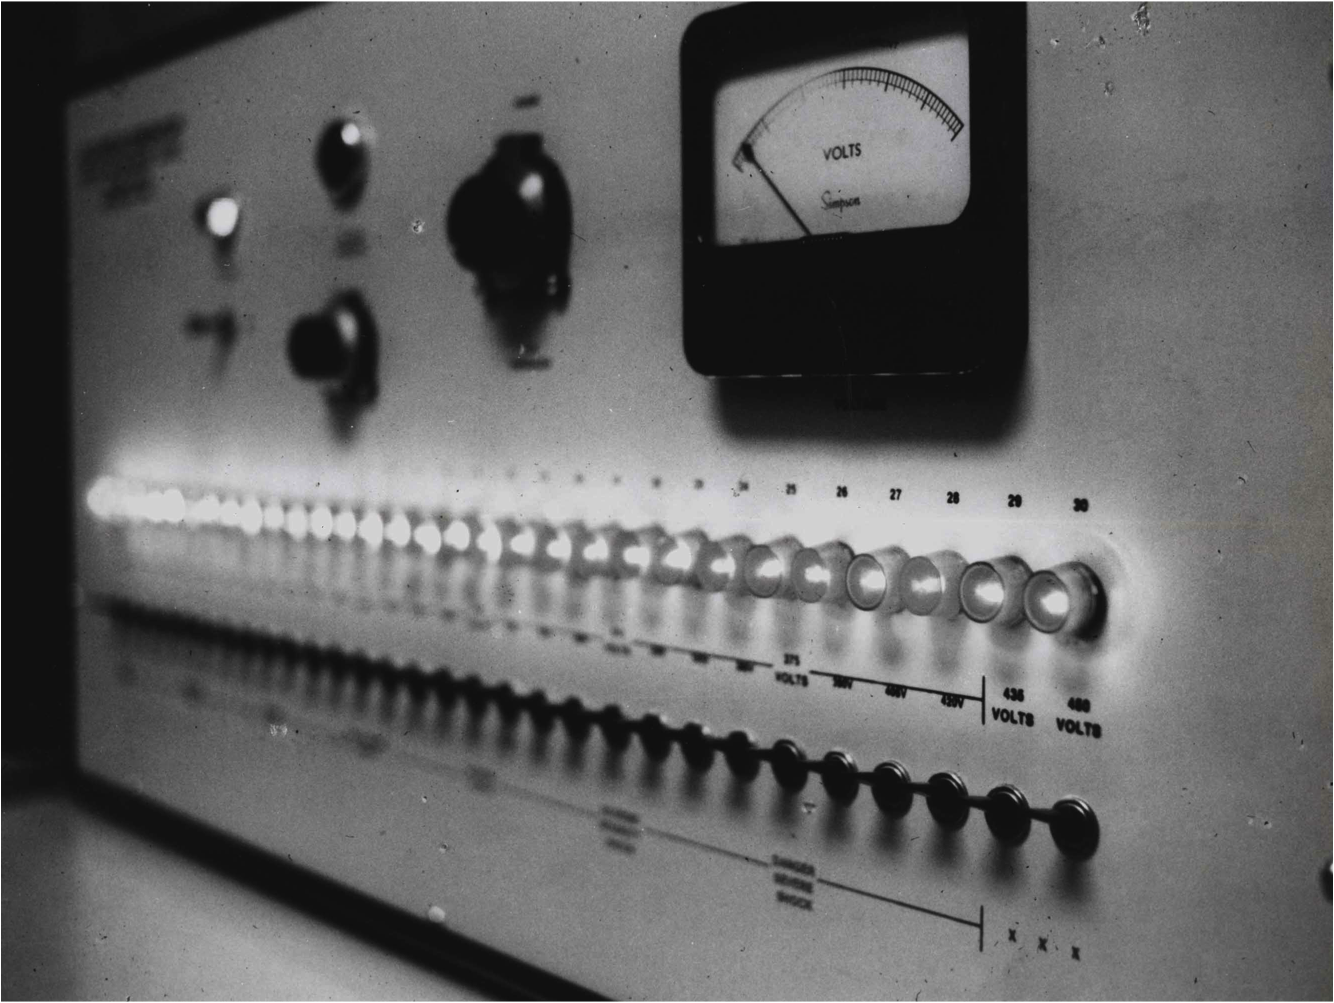 The 'sophisticated' machinery of the Milgram Obedience Experiment